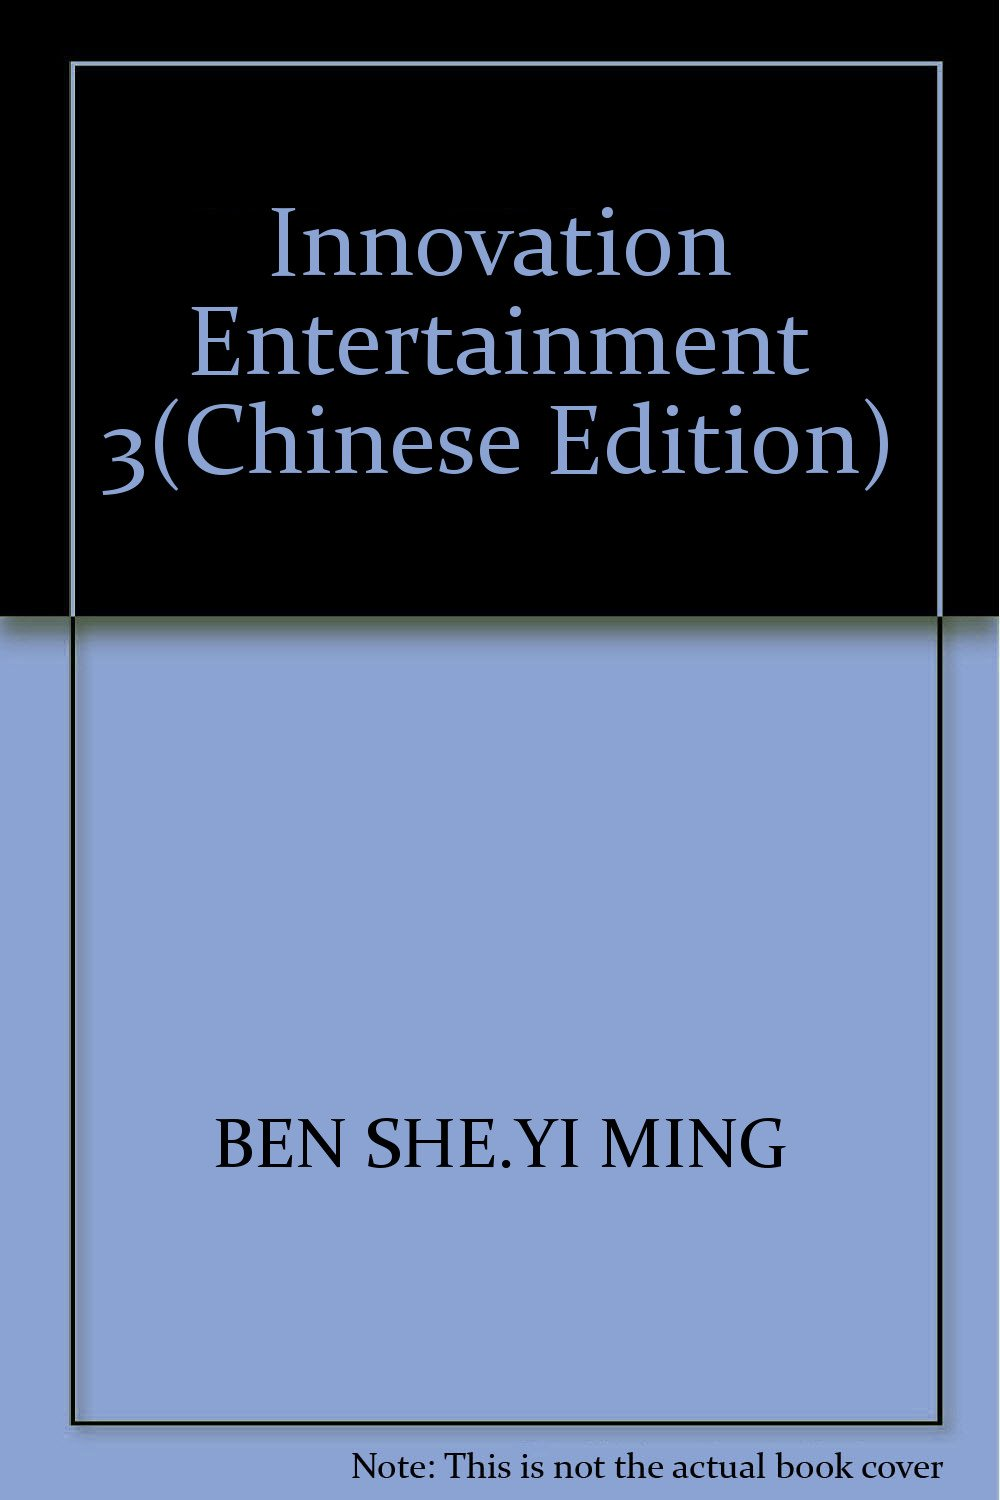 Read Online Innovation Entertainment 3(Chinese Edition) PDF